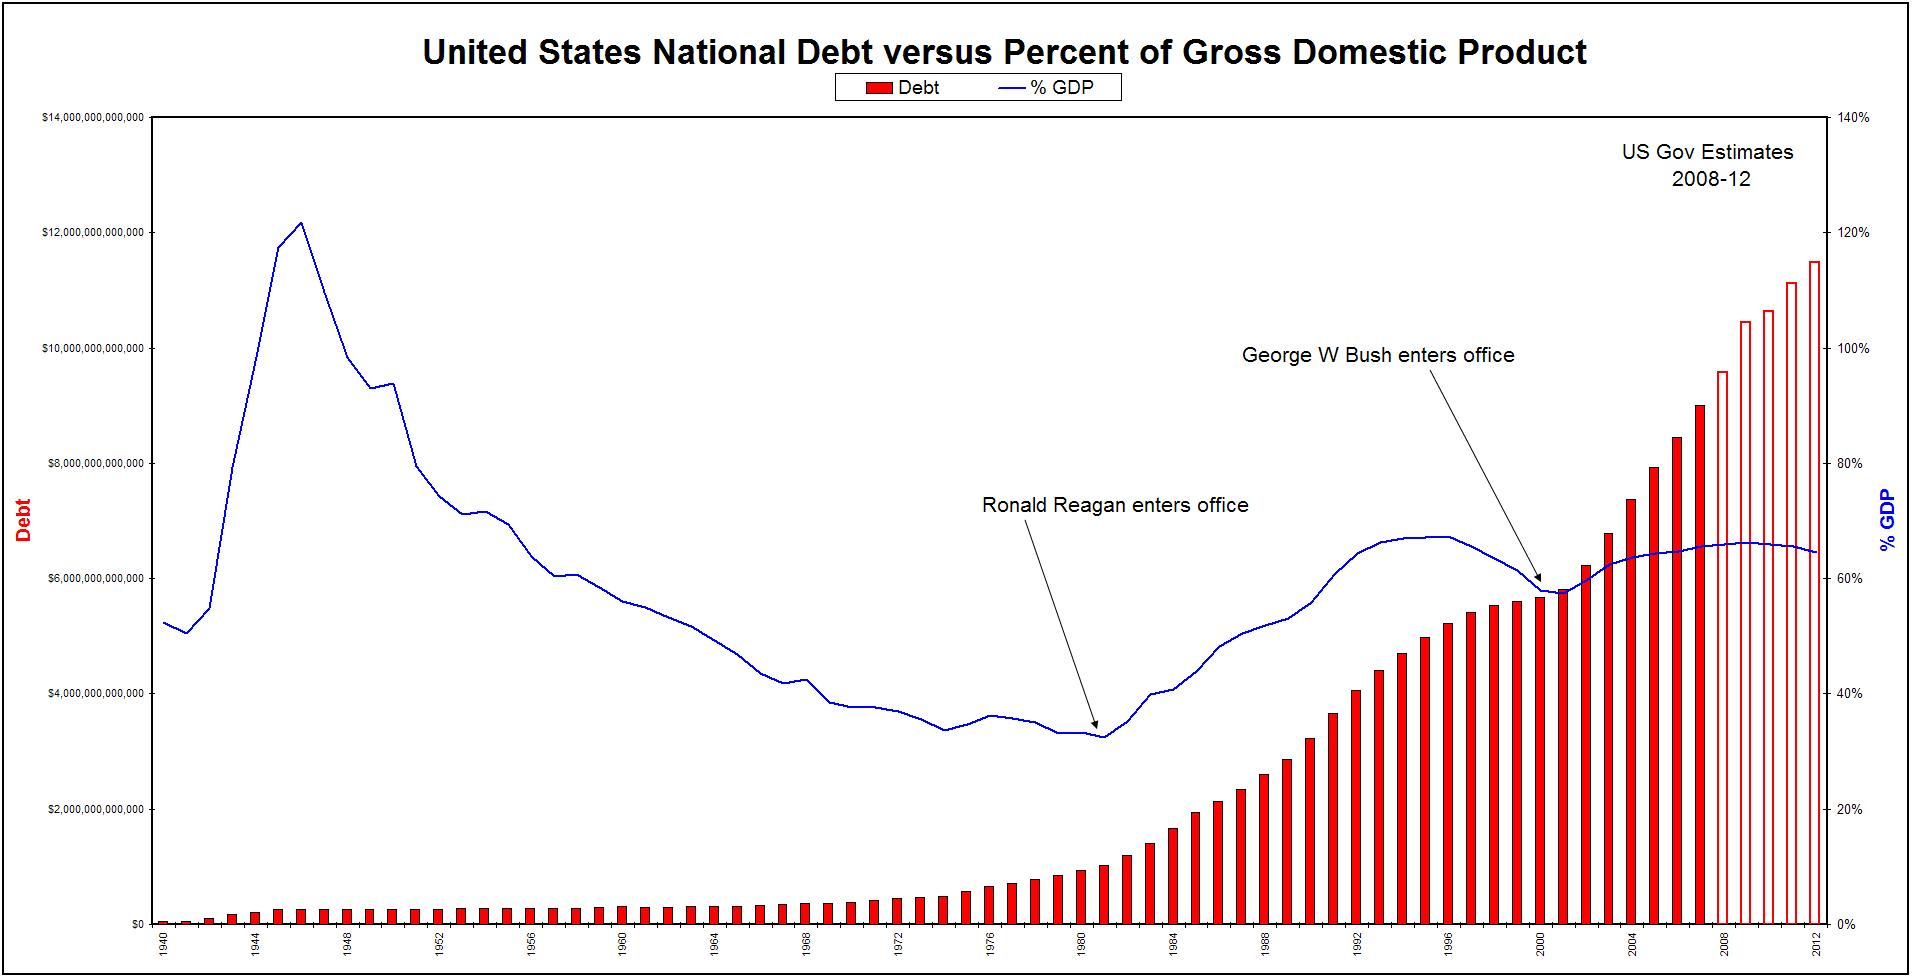 an analysis of the cutting of the national debt of the united states of america The national debt level of the united states has always been a subject of controversy but, given that four consecutive years of $1 trillion budget deficits (2009-2012) has pushed the national.